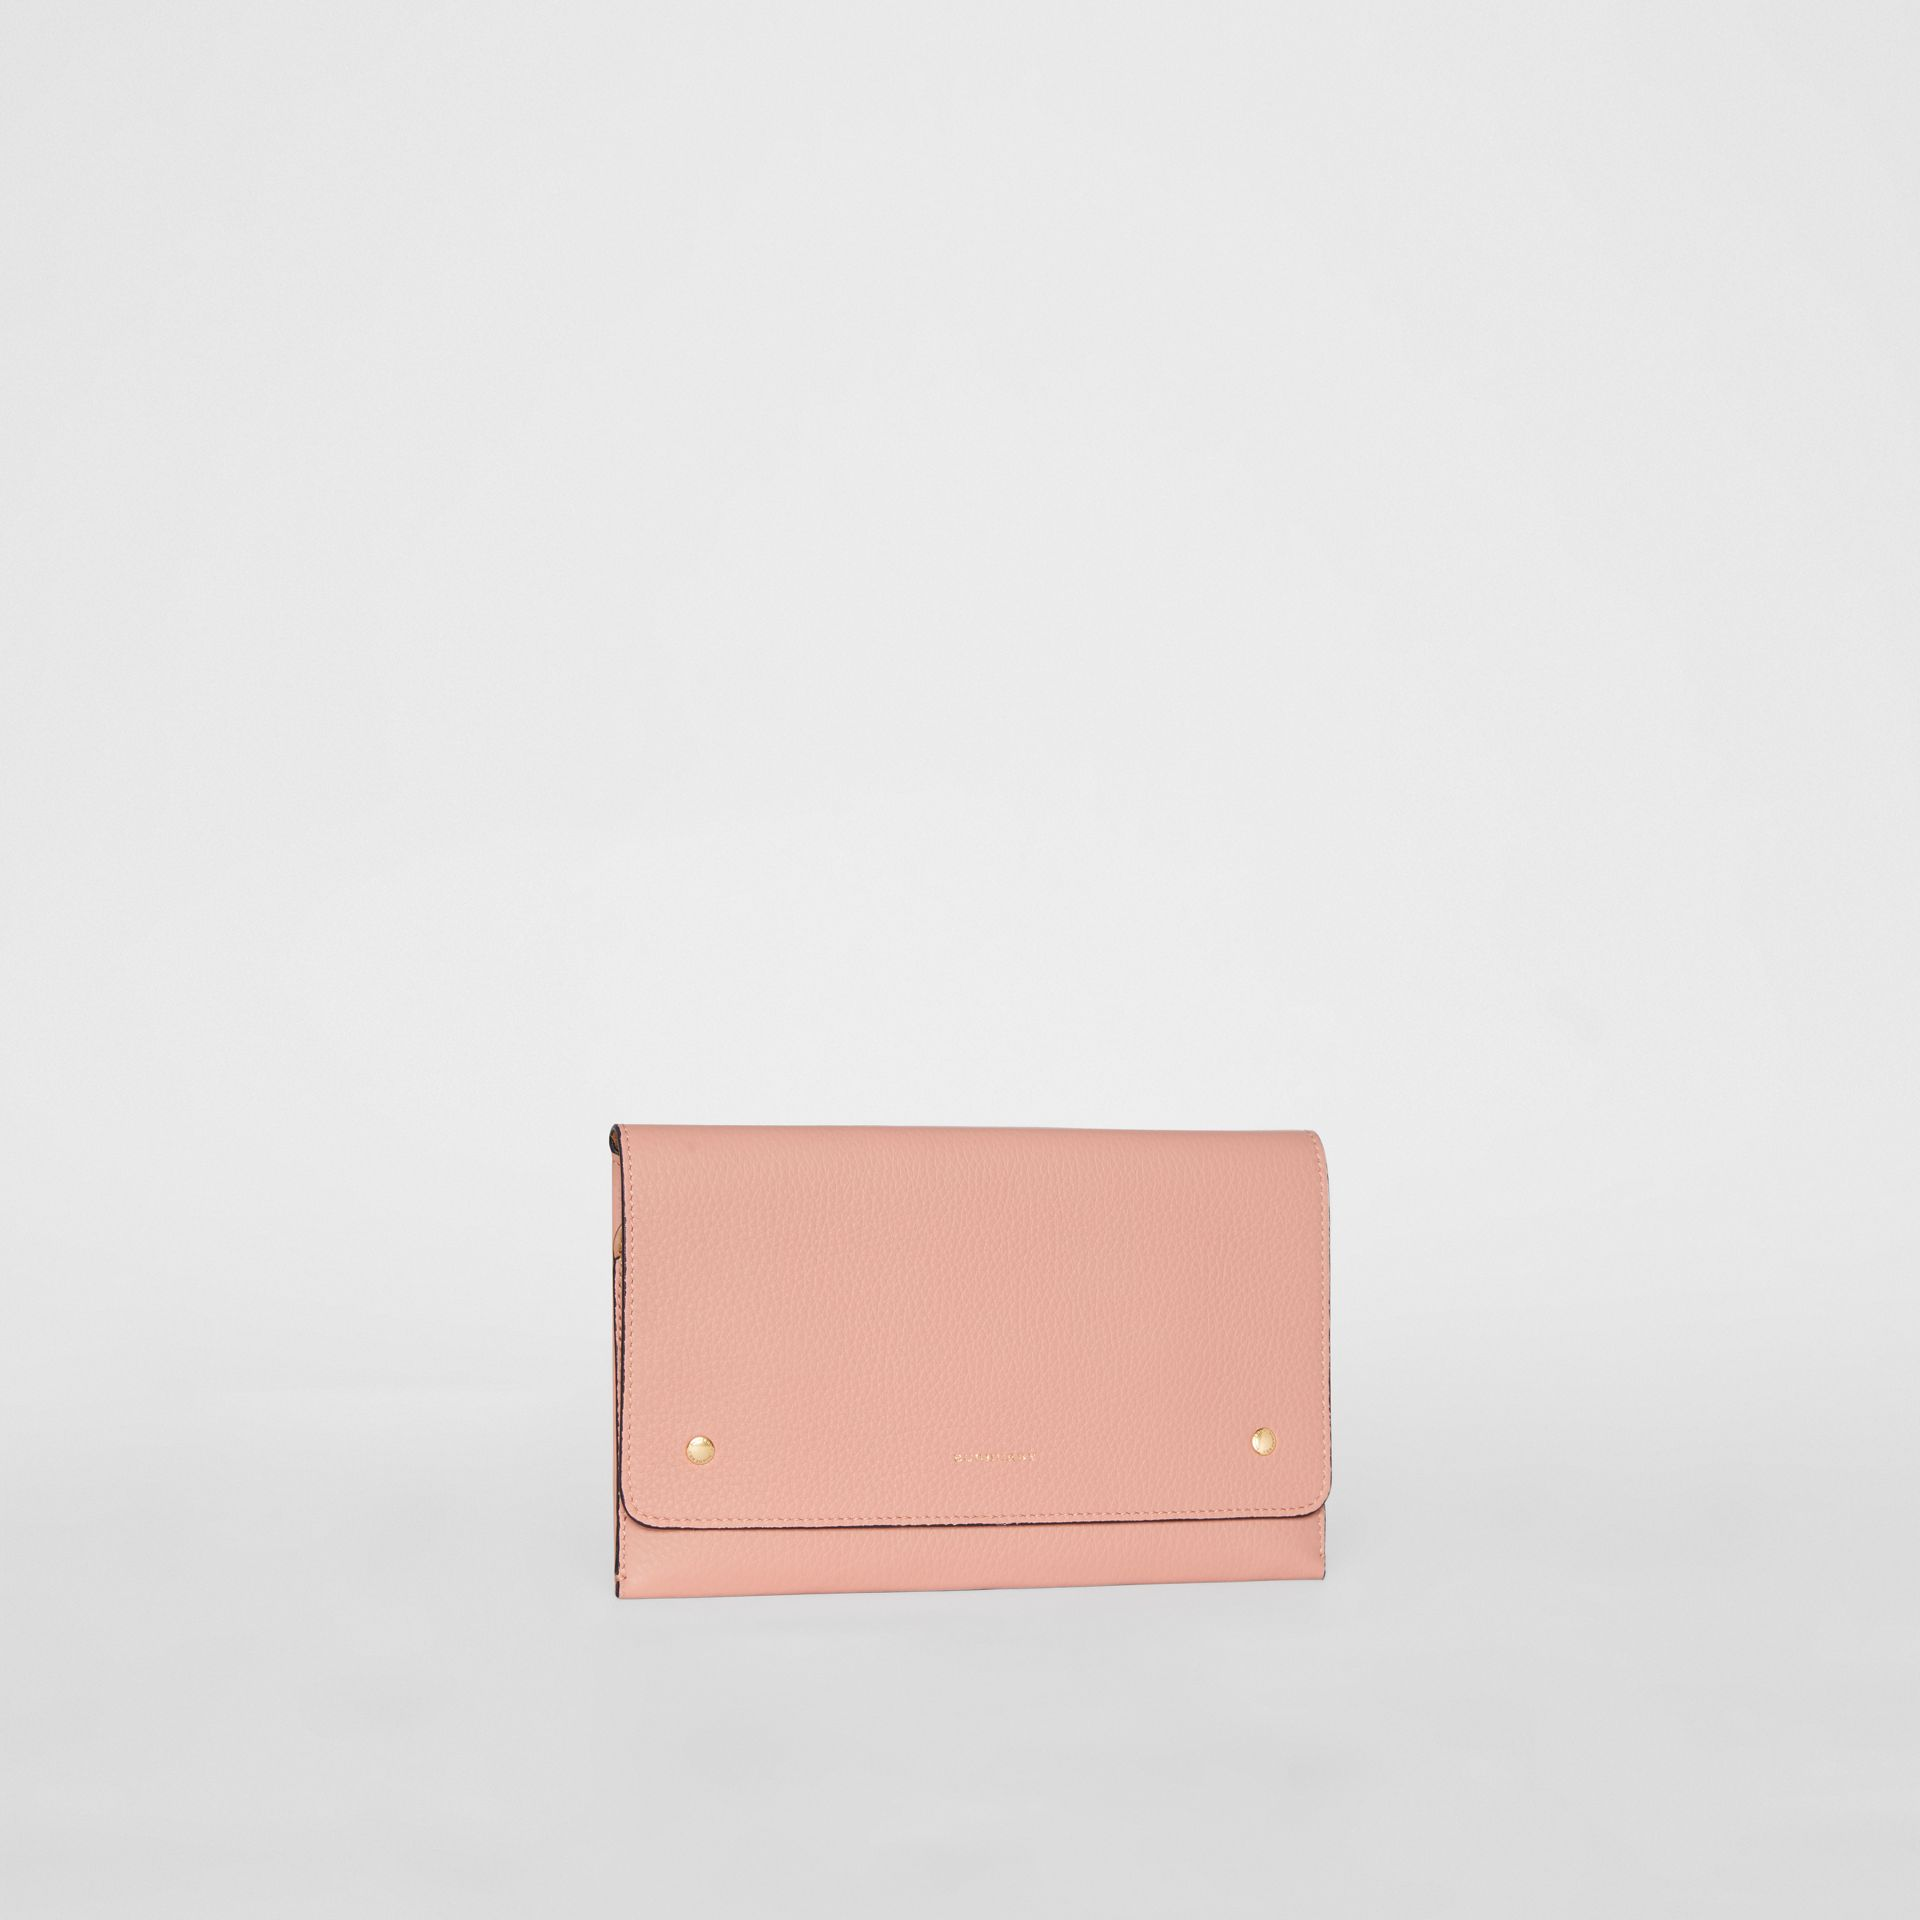 Clutch wristlet en cuir bicolore (Rose Platiné) - Femme | Burberry - photo de la galerie 5